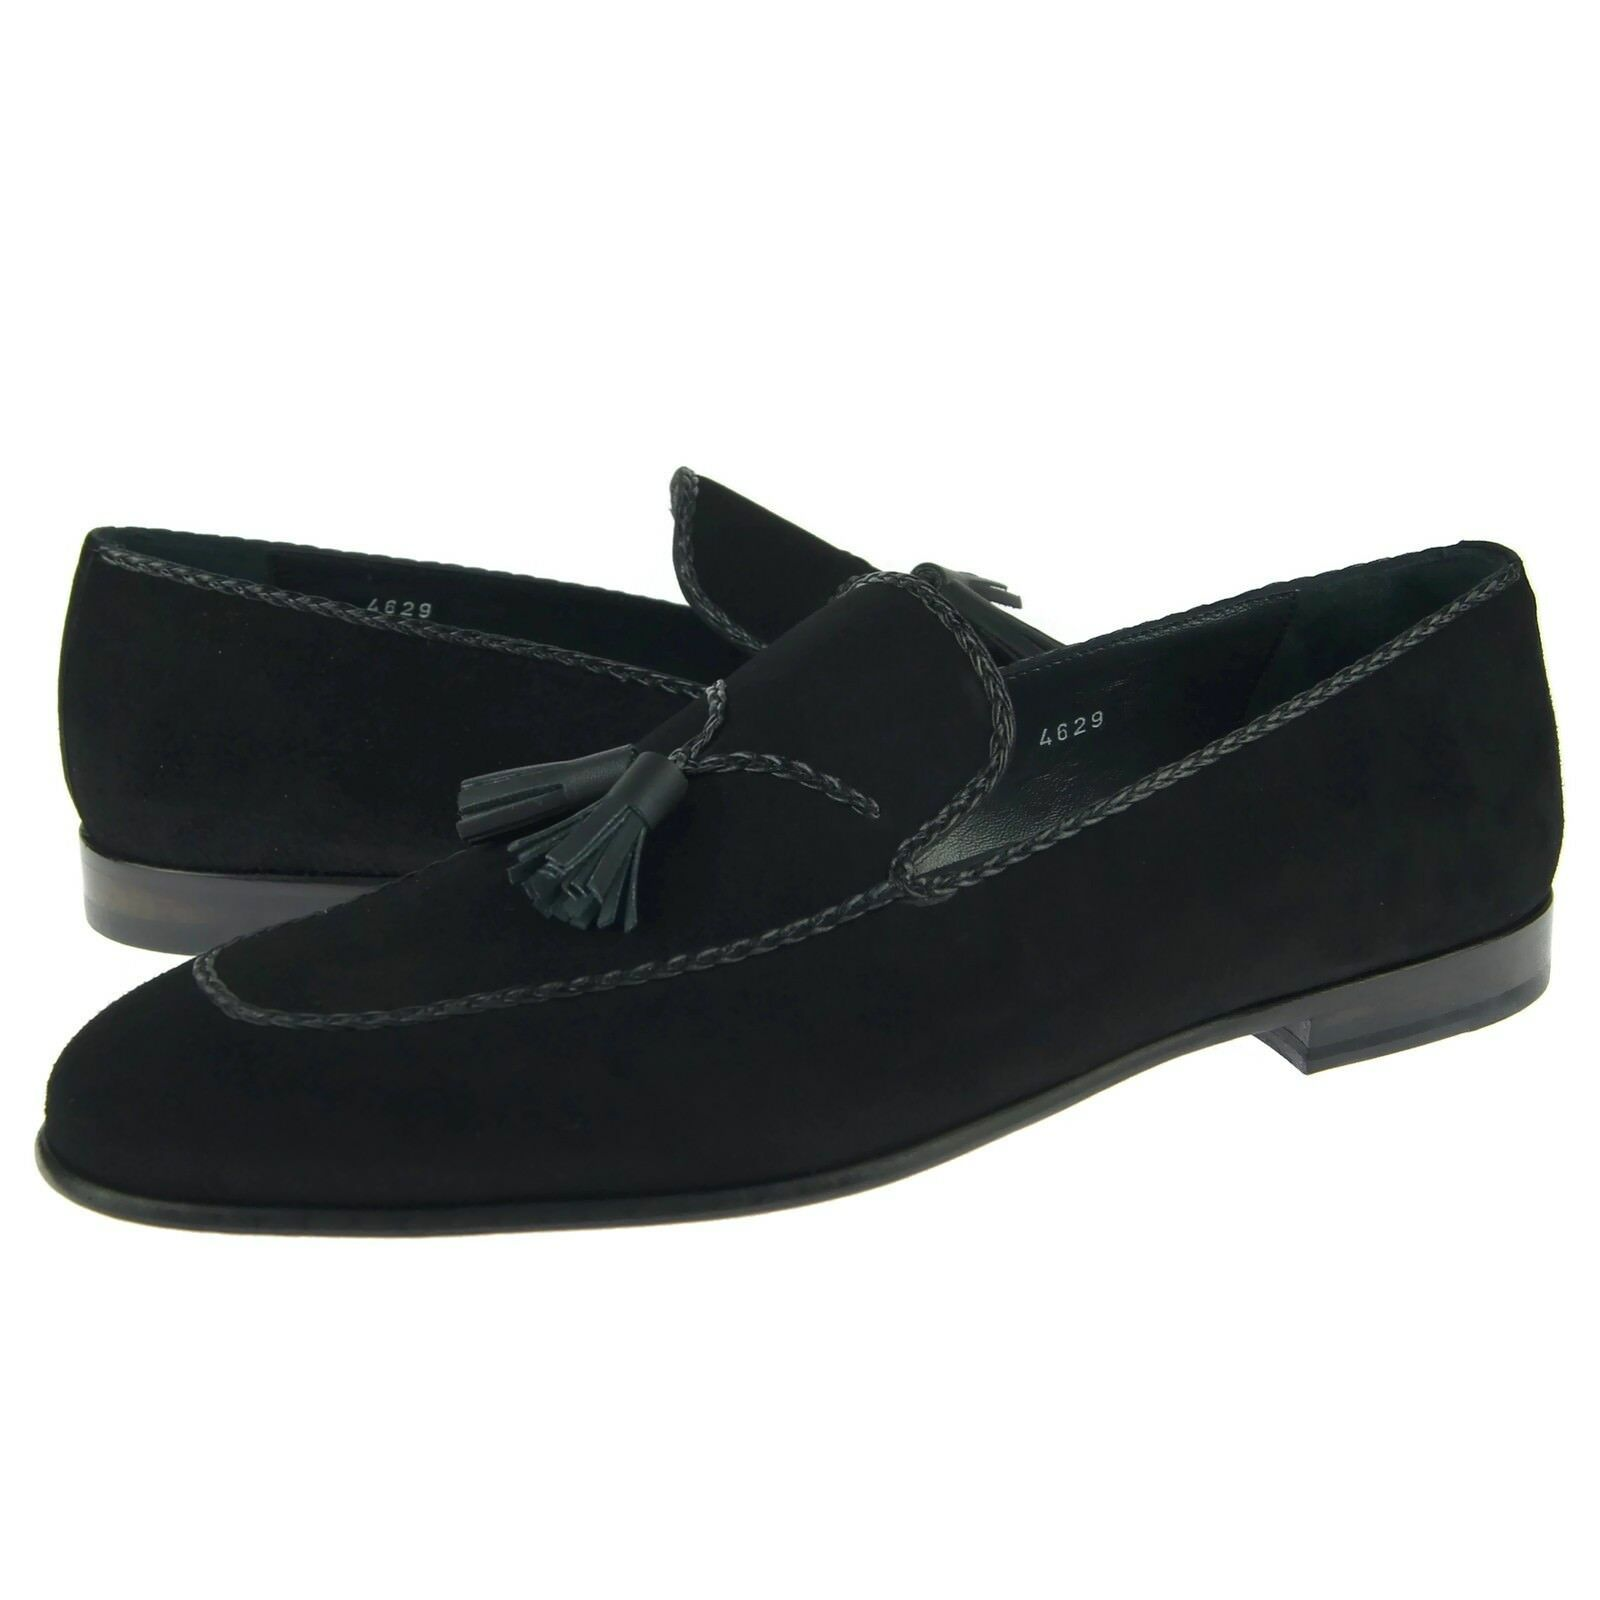 Corrente 4629 Suede Tassel Loafer, Men's Slip-on shoes, Black